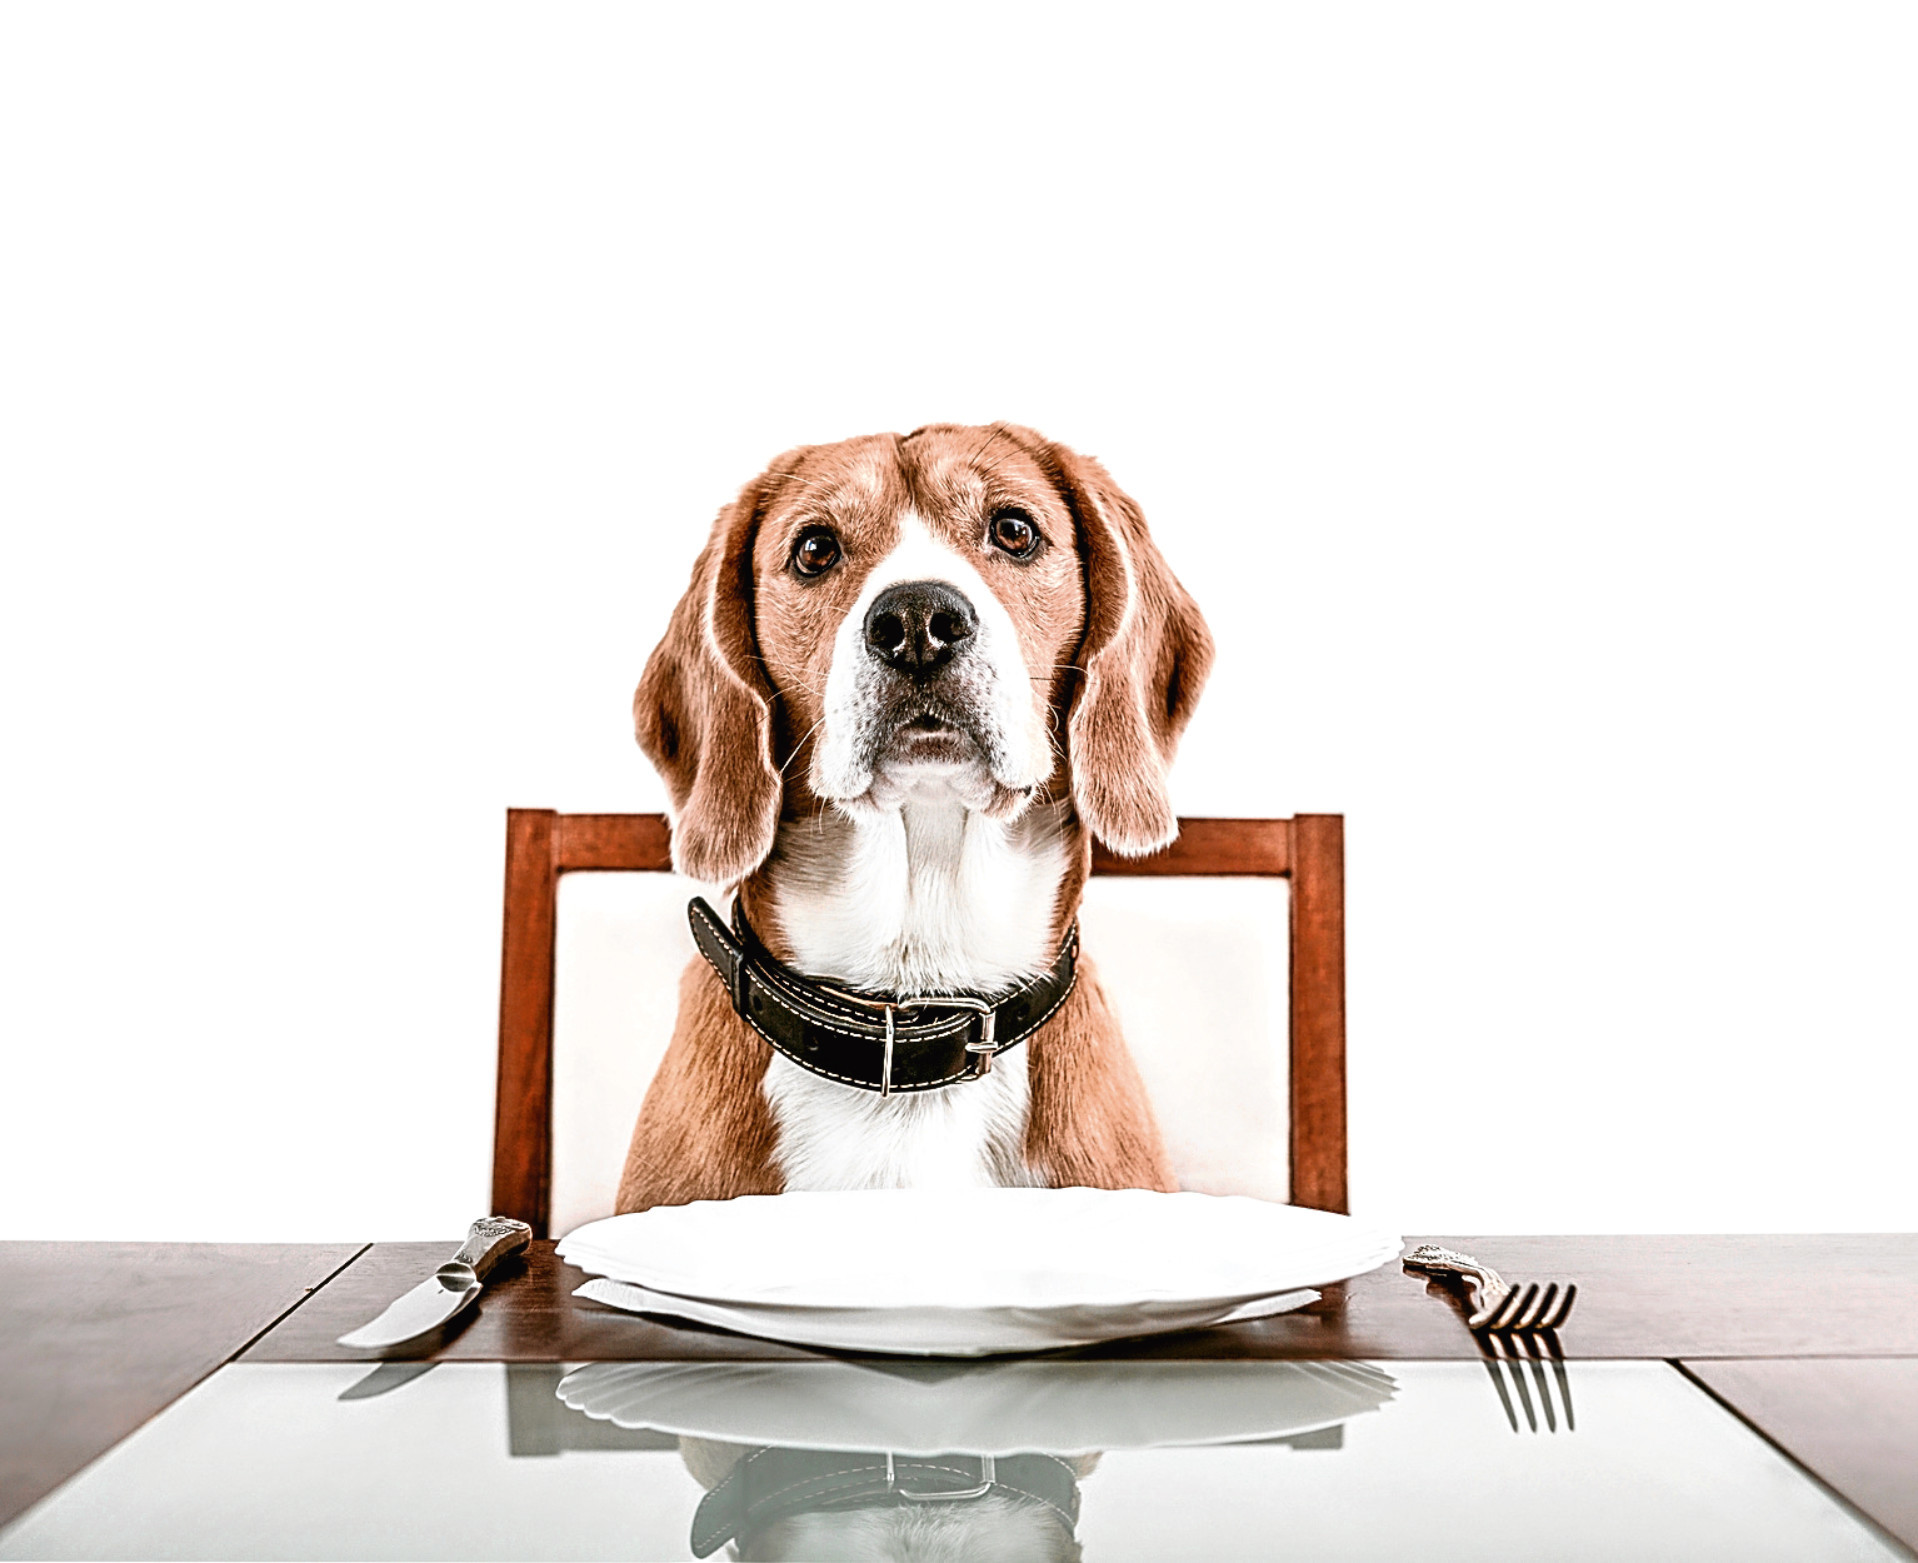 Dog's dinner (Getty Images)